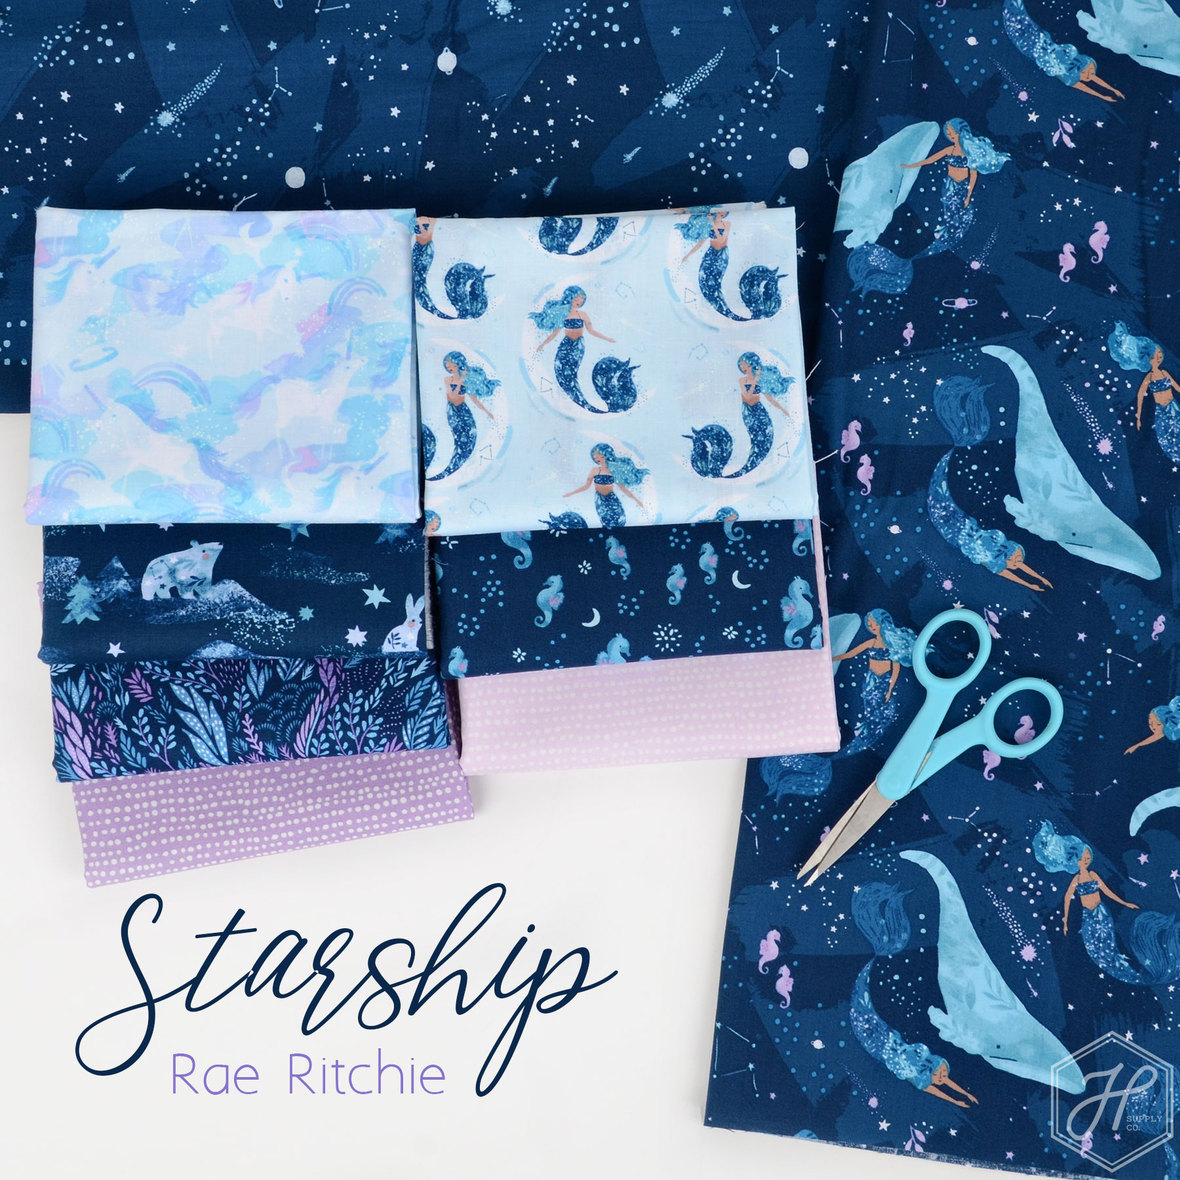 Starship-Fabric-Dear-Stella-at-Hawthorne-Supply-Co.